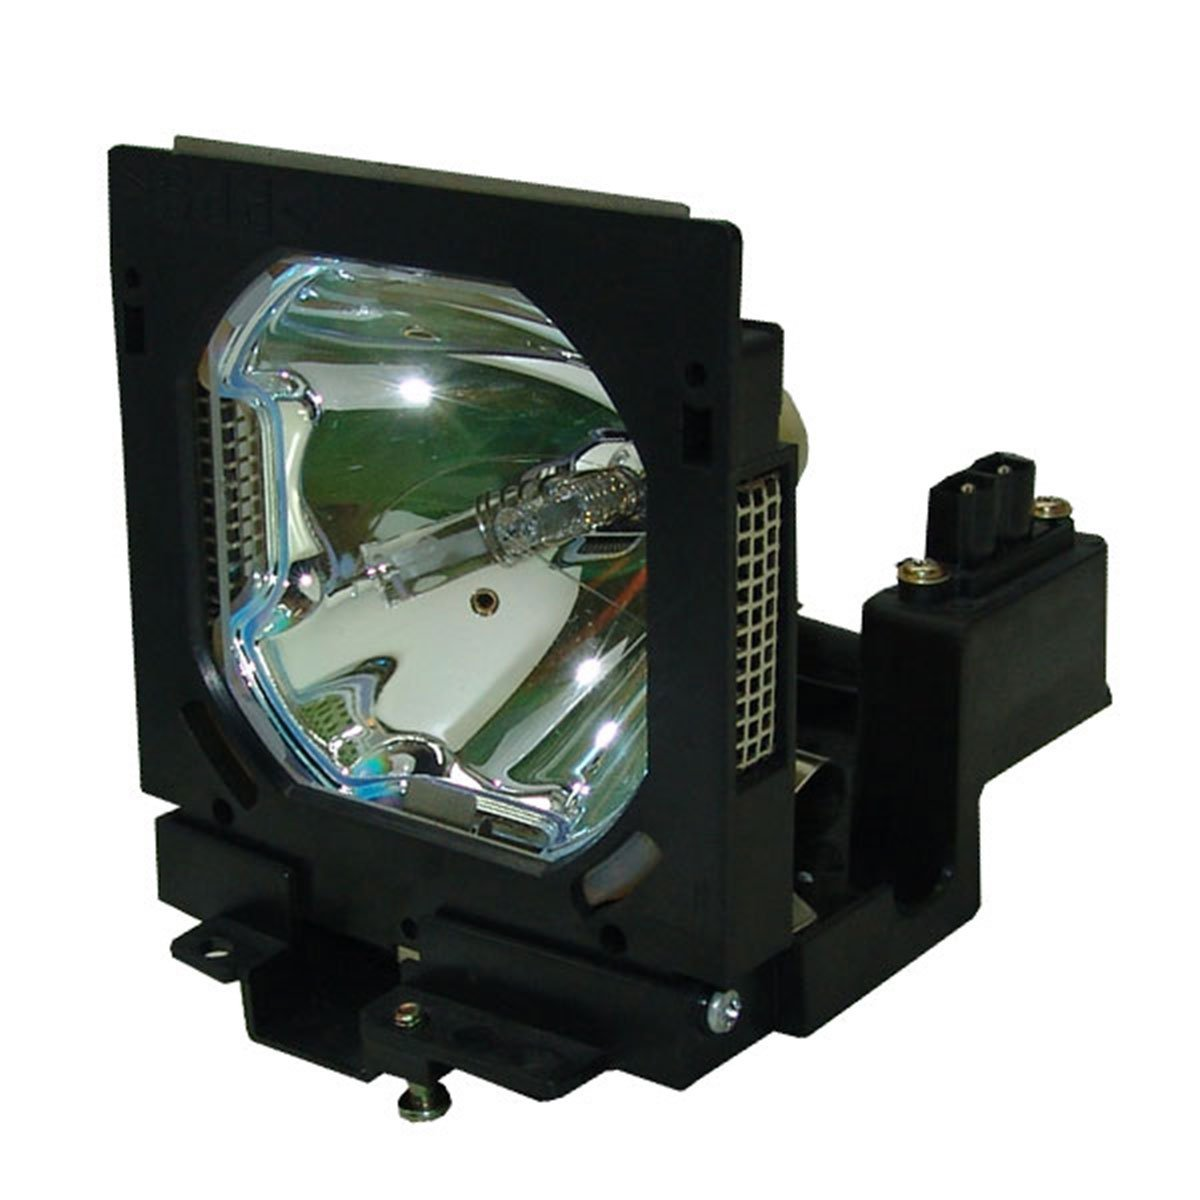 Lutema 03-000708-01P-P01 Christie 03-000708-01P LCD/DLP Projector Lamp (Philips Inside)